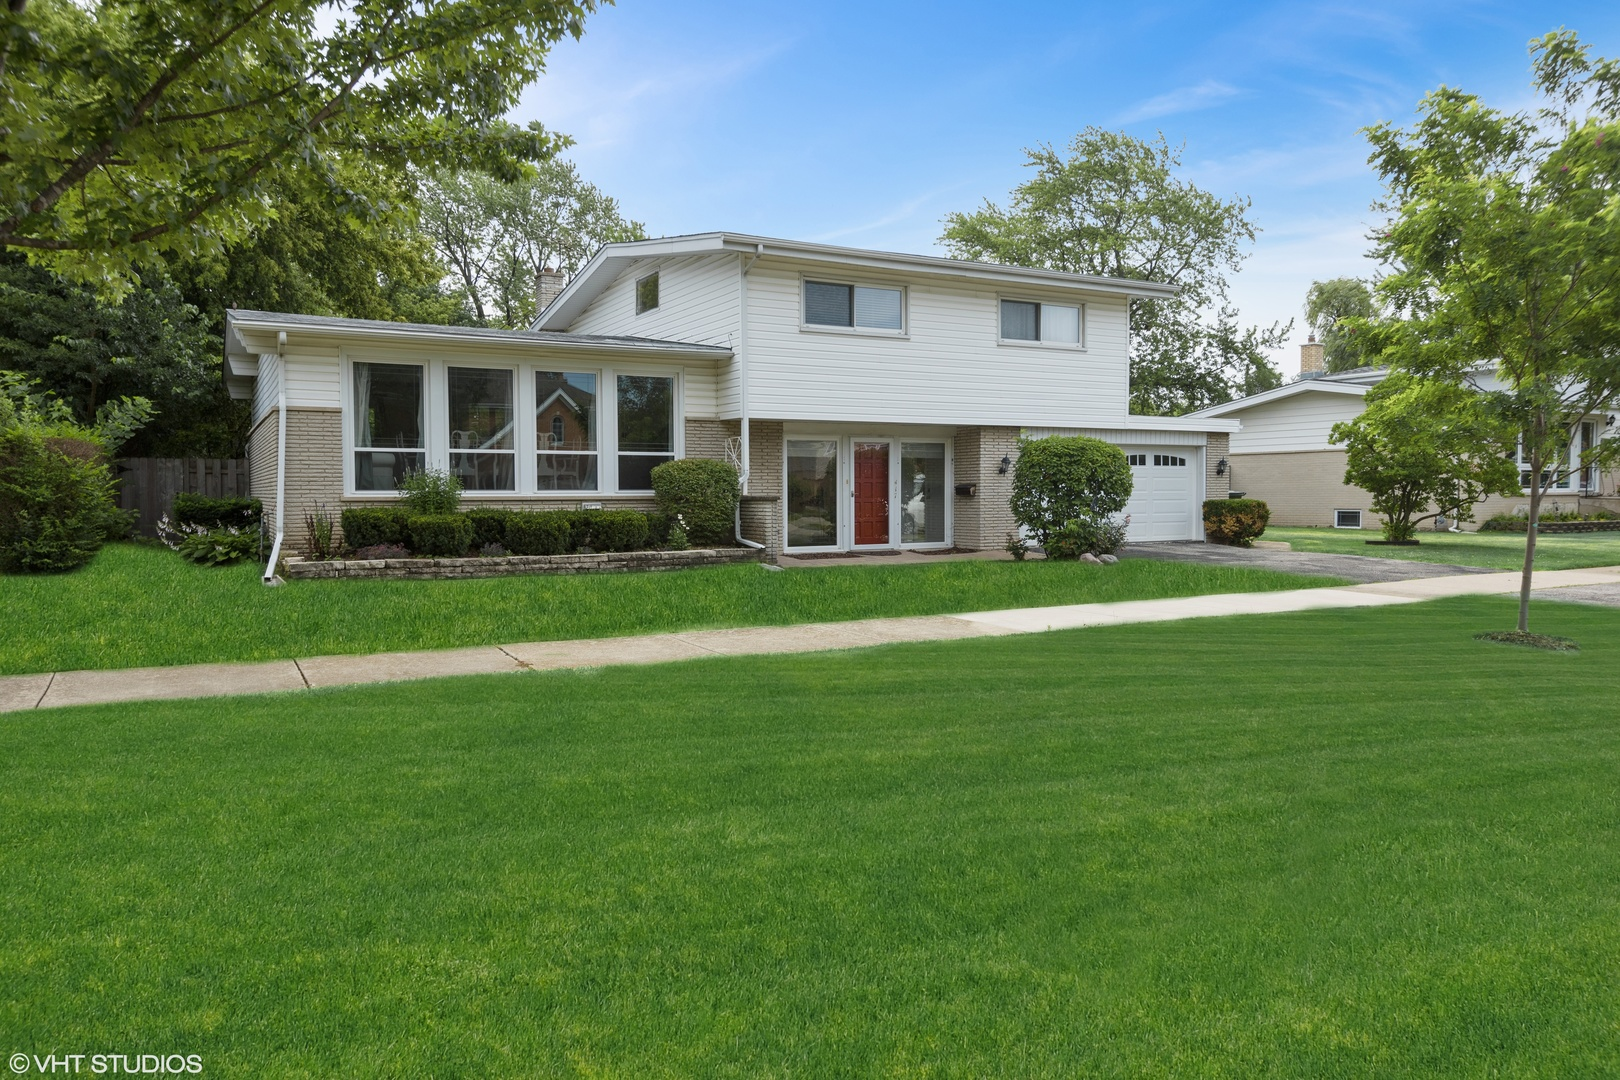 417 Huber Lane, Glenview in Cook County, IL 60025 Home for Sale